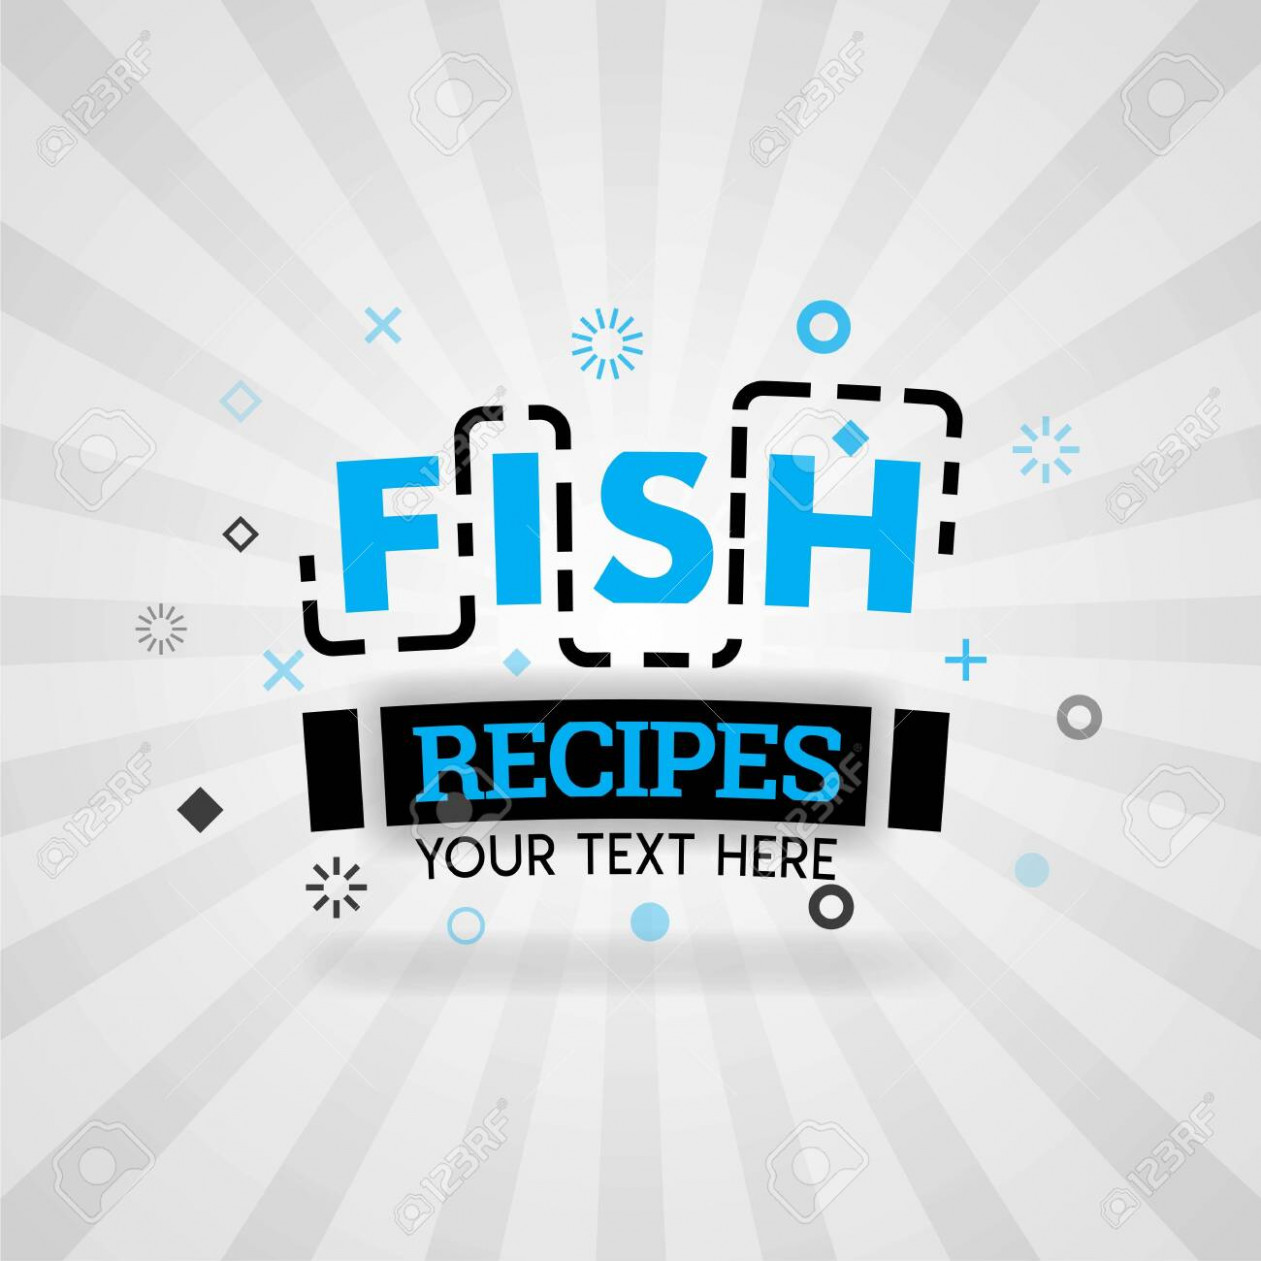 poster fish food recipes for cooking ideas with various best.